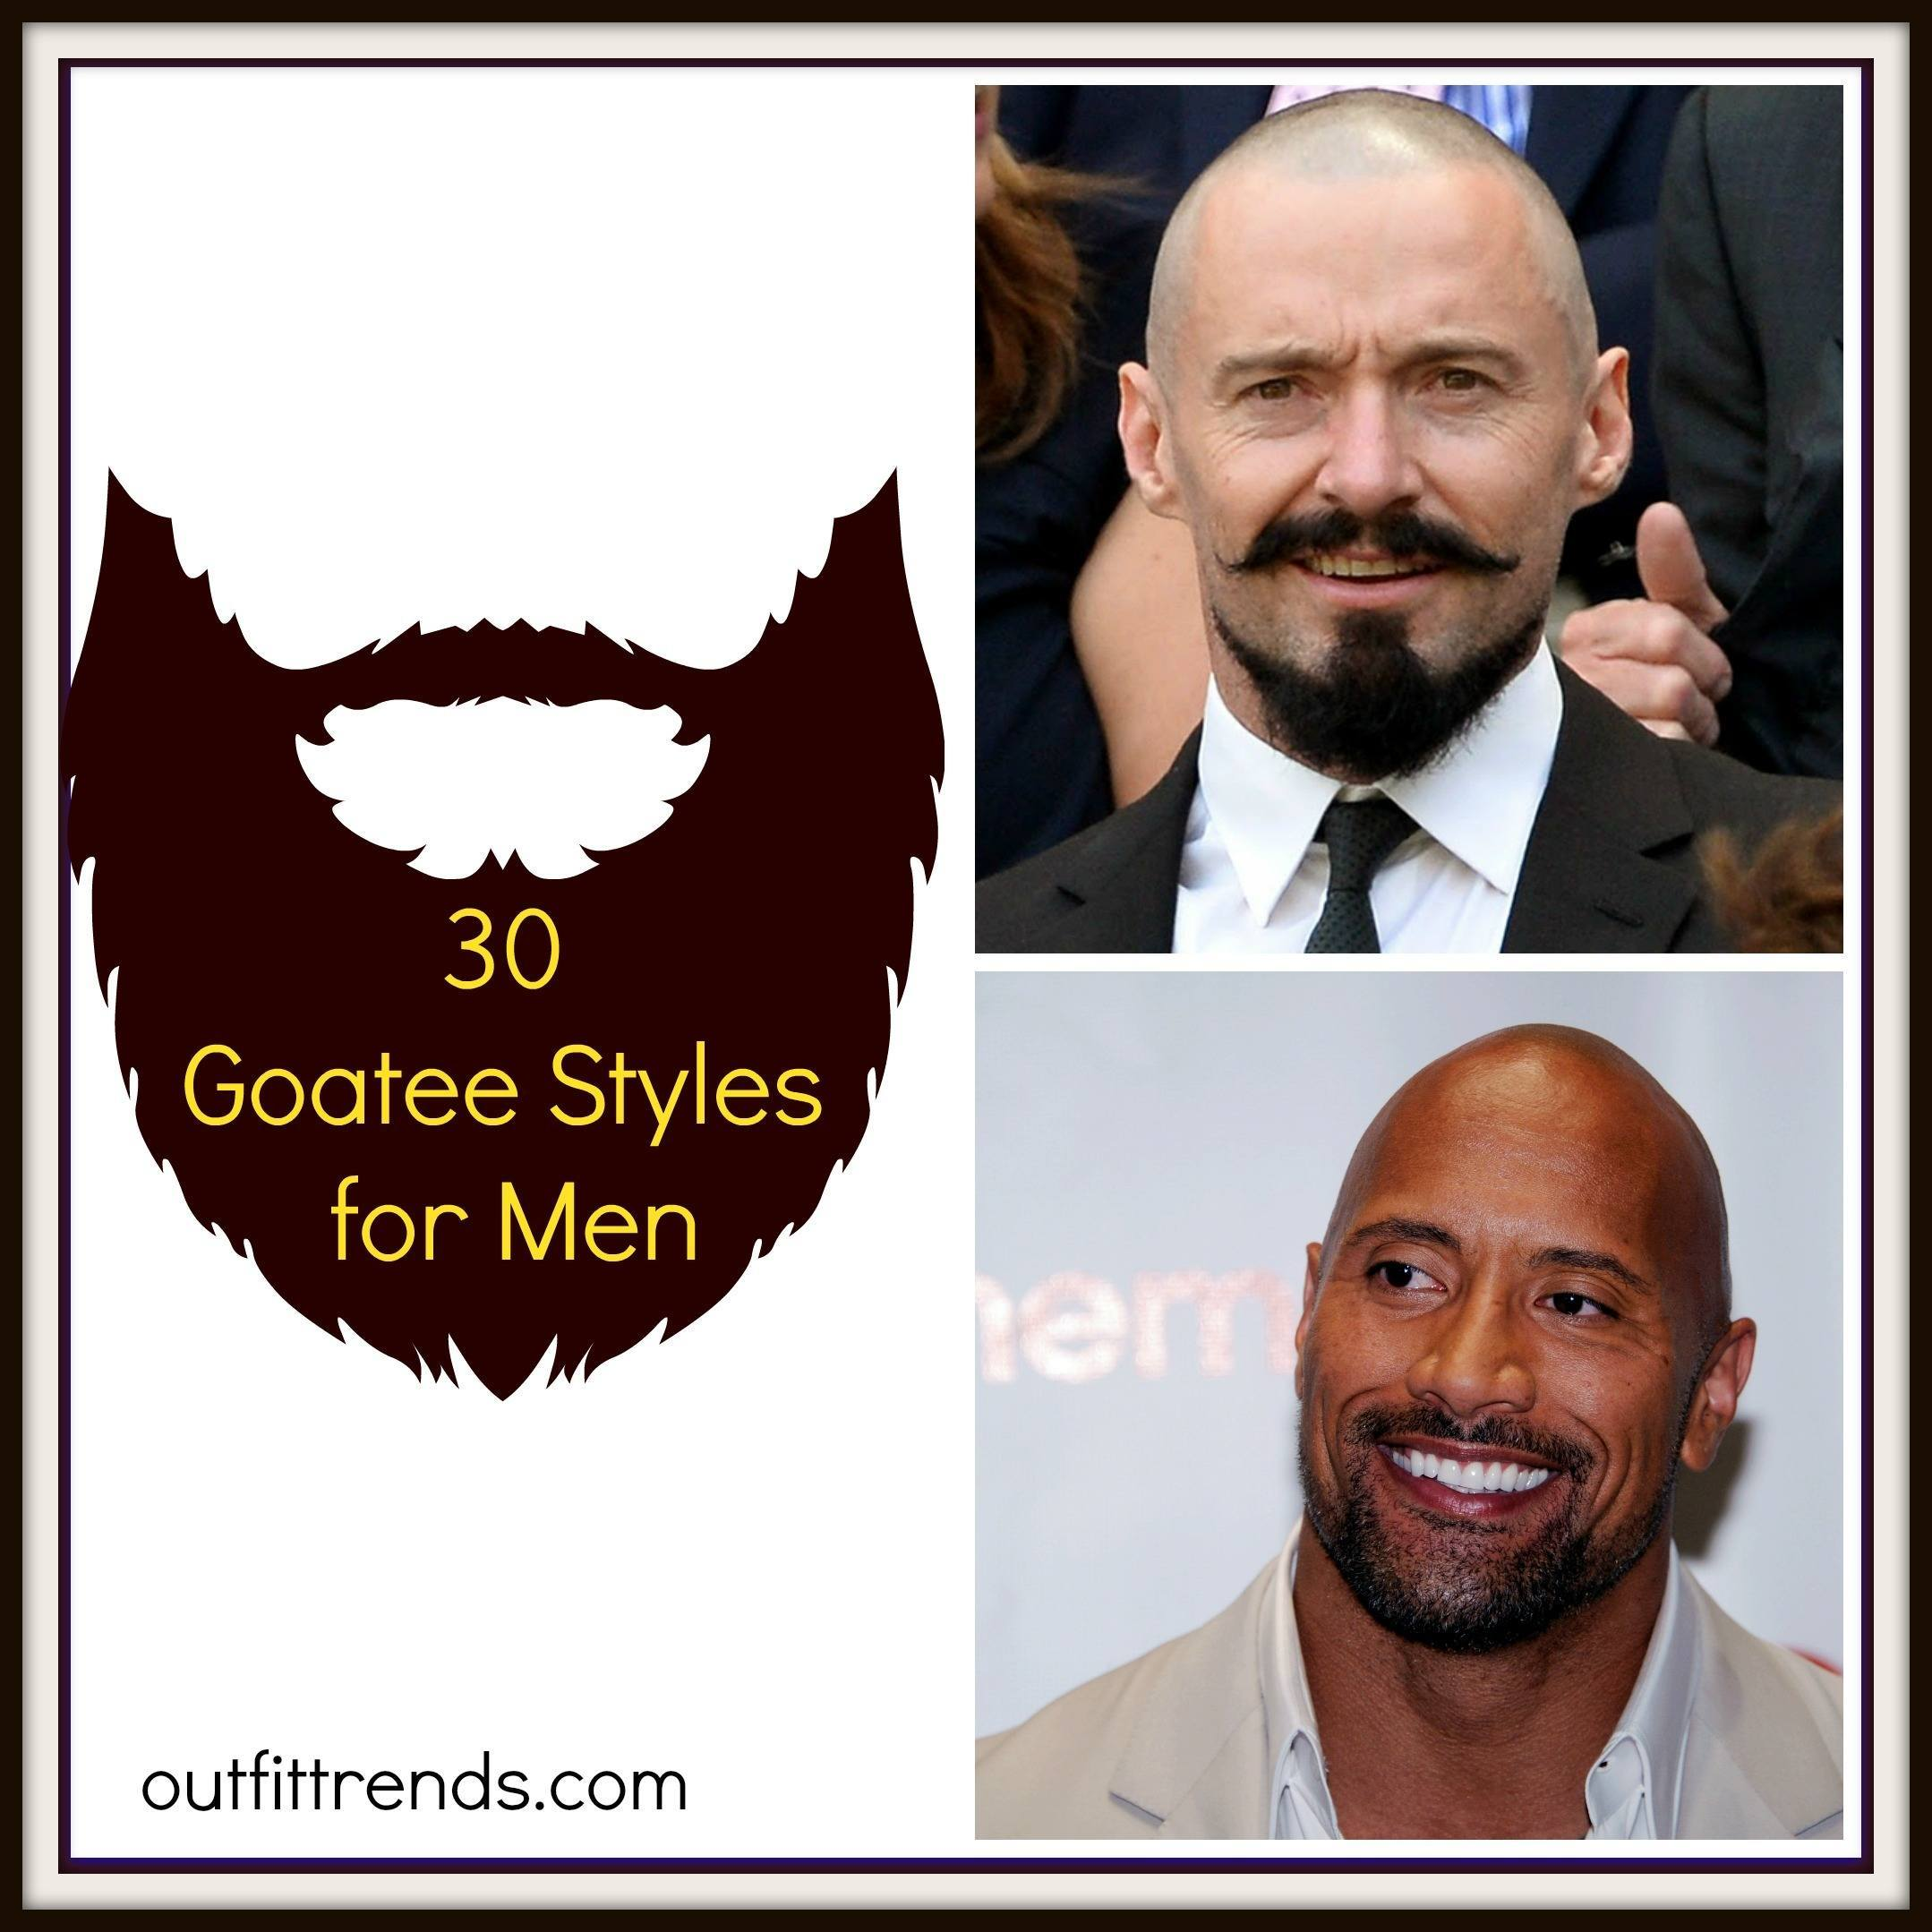 Fine French Beard Styles 15 Different French Style Facial Hairs Short Hairstyles For Black Women Fulllsitofus